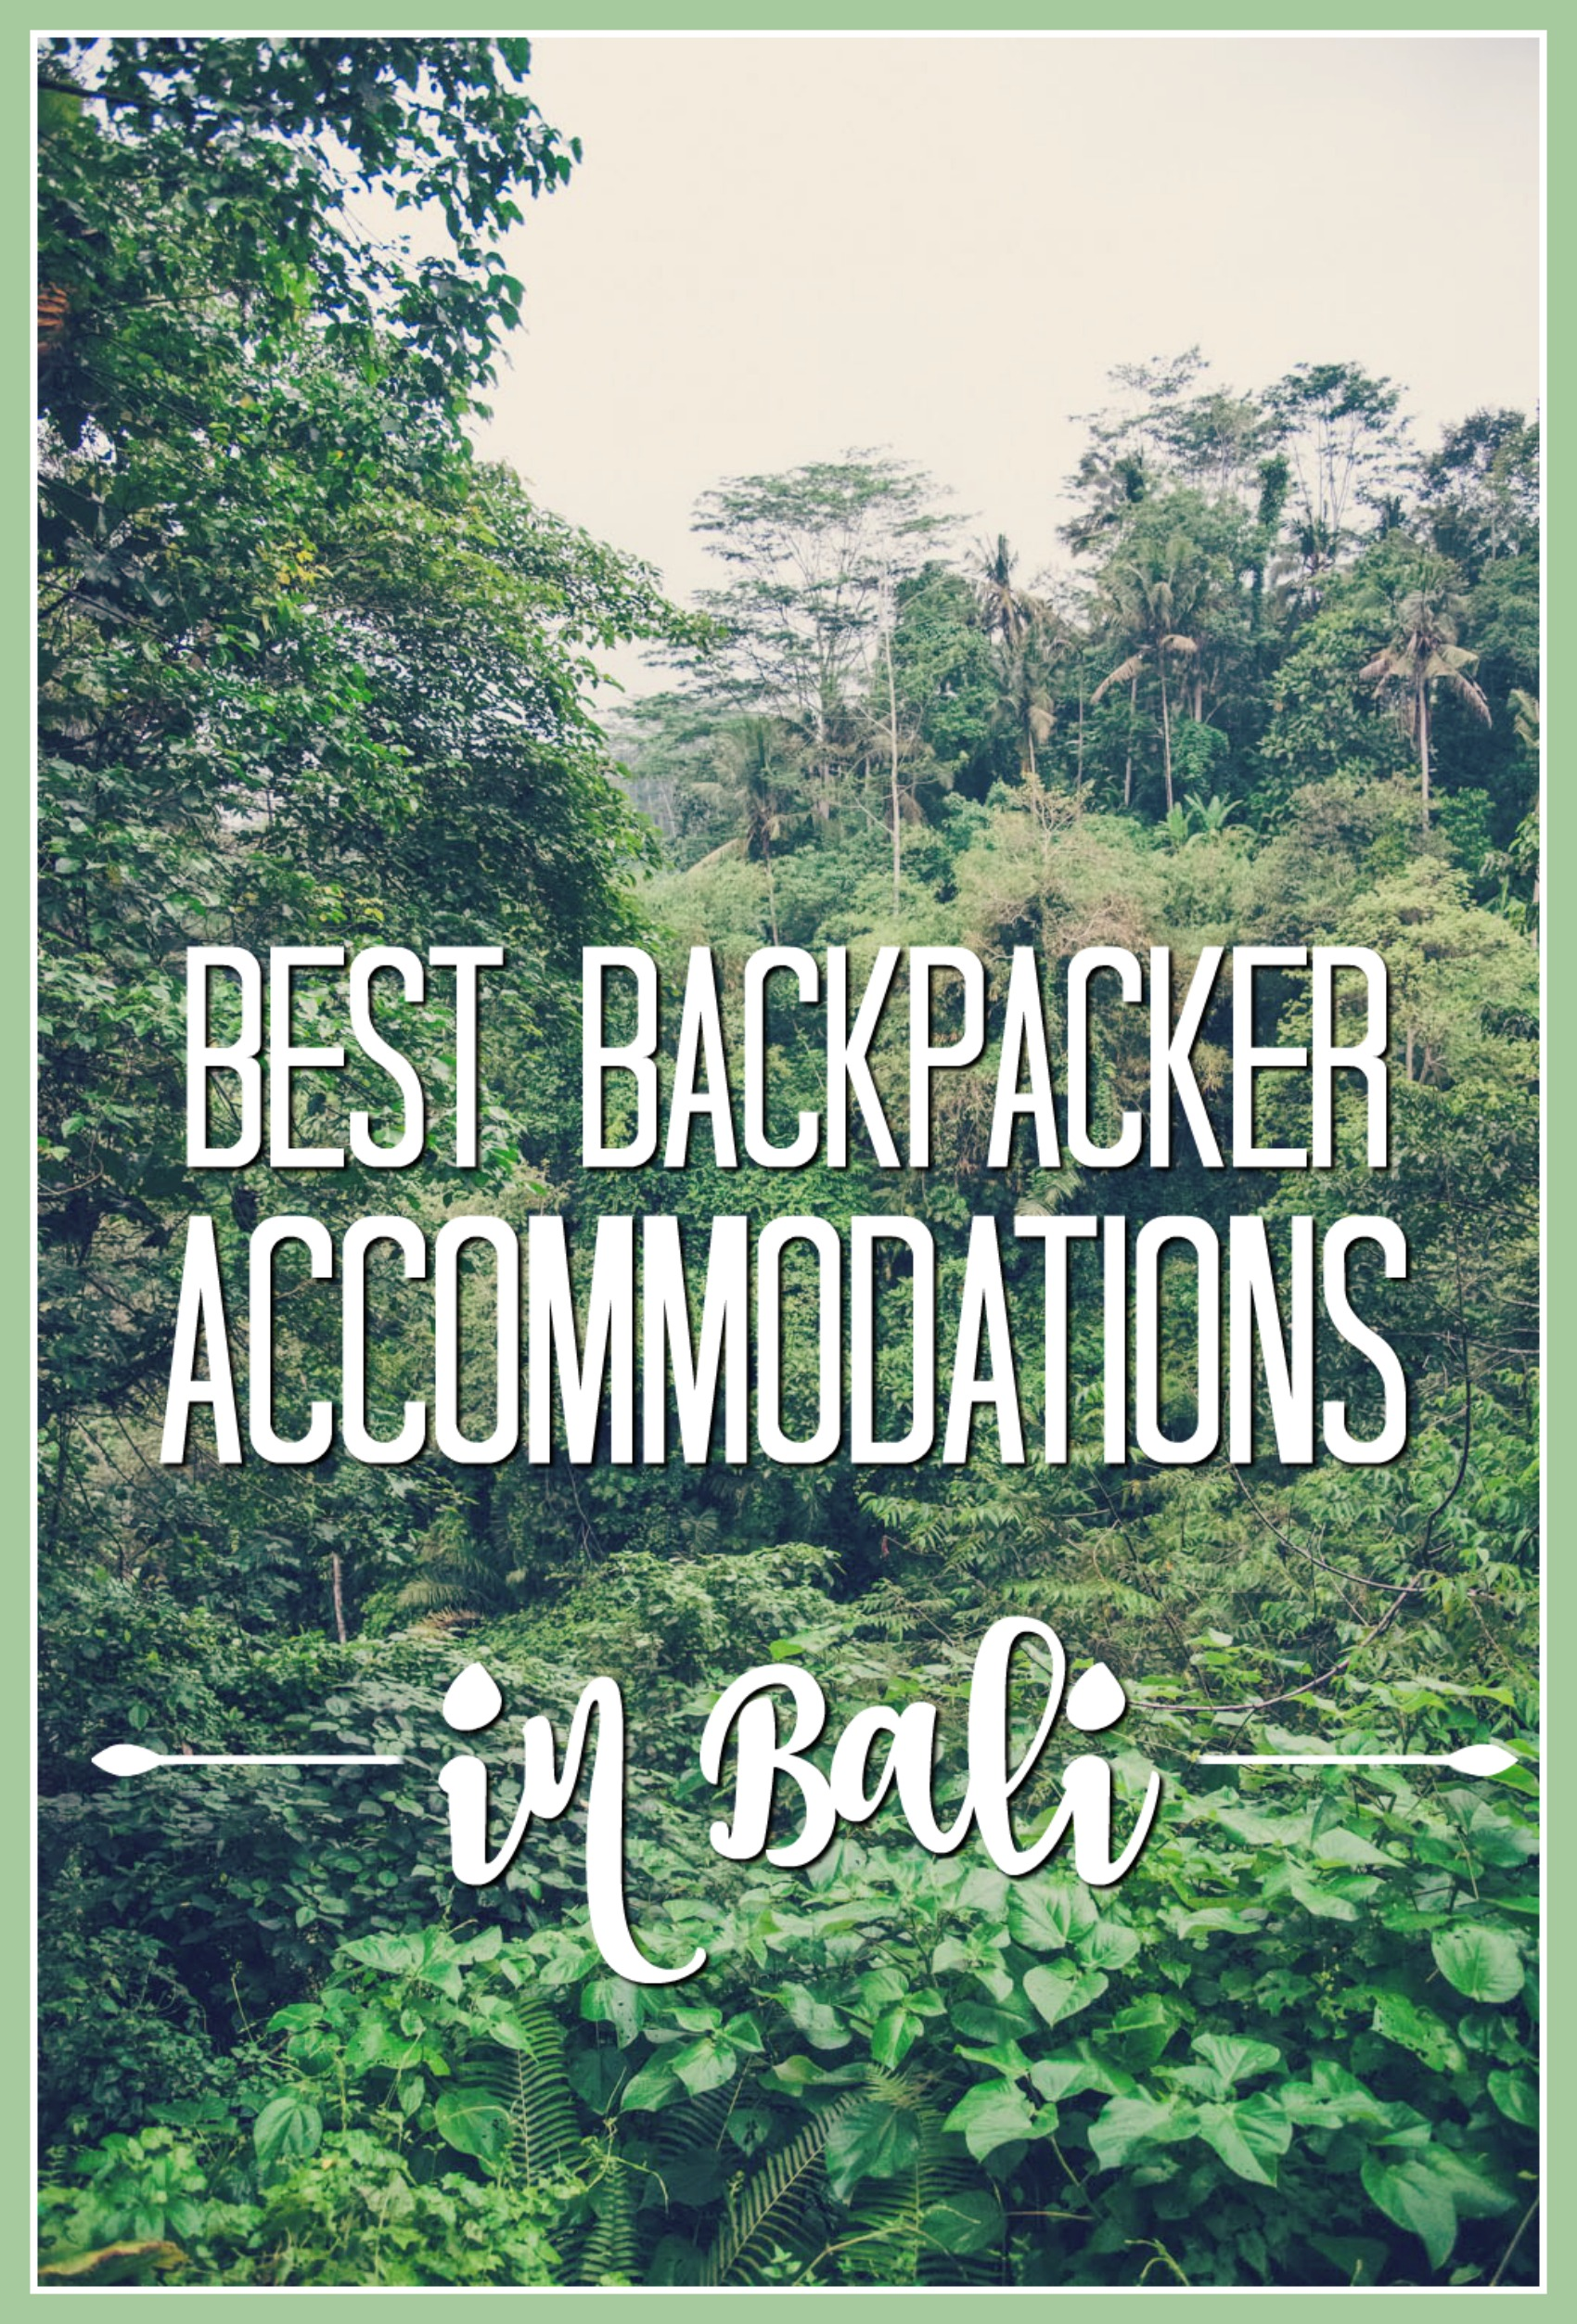 backpacker accommodations in Bali